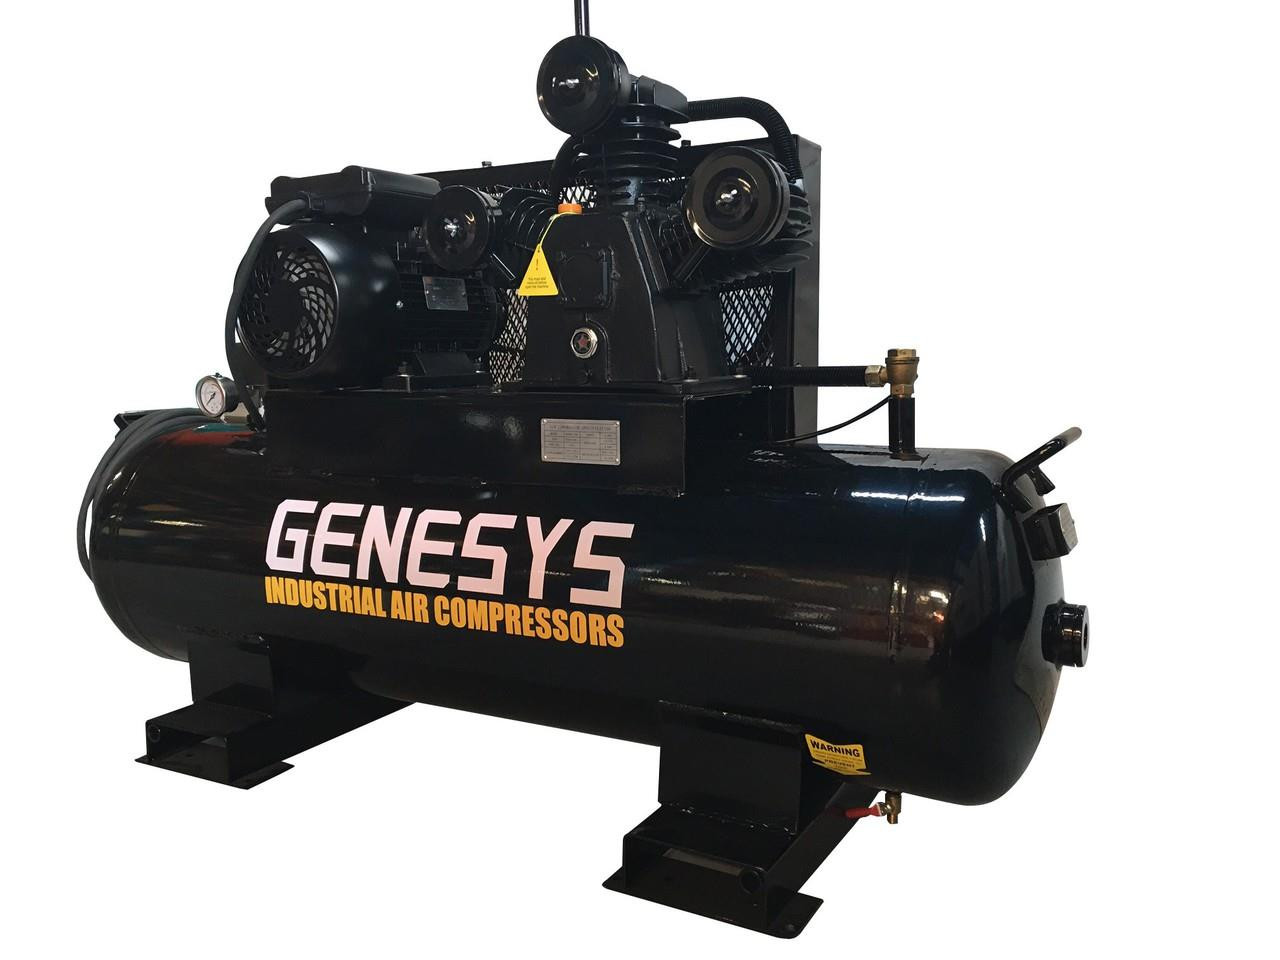 Genesys Industrial Air Compressors